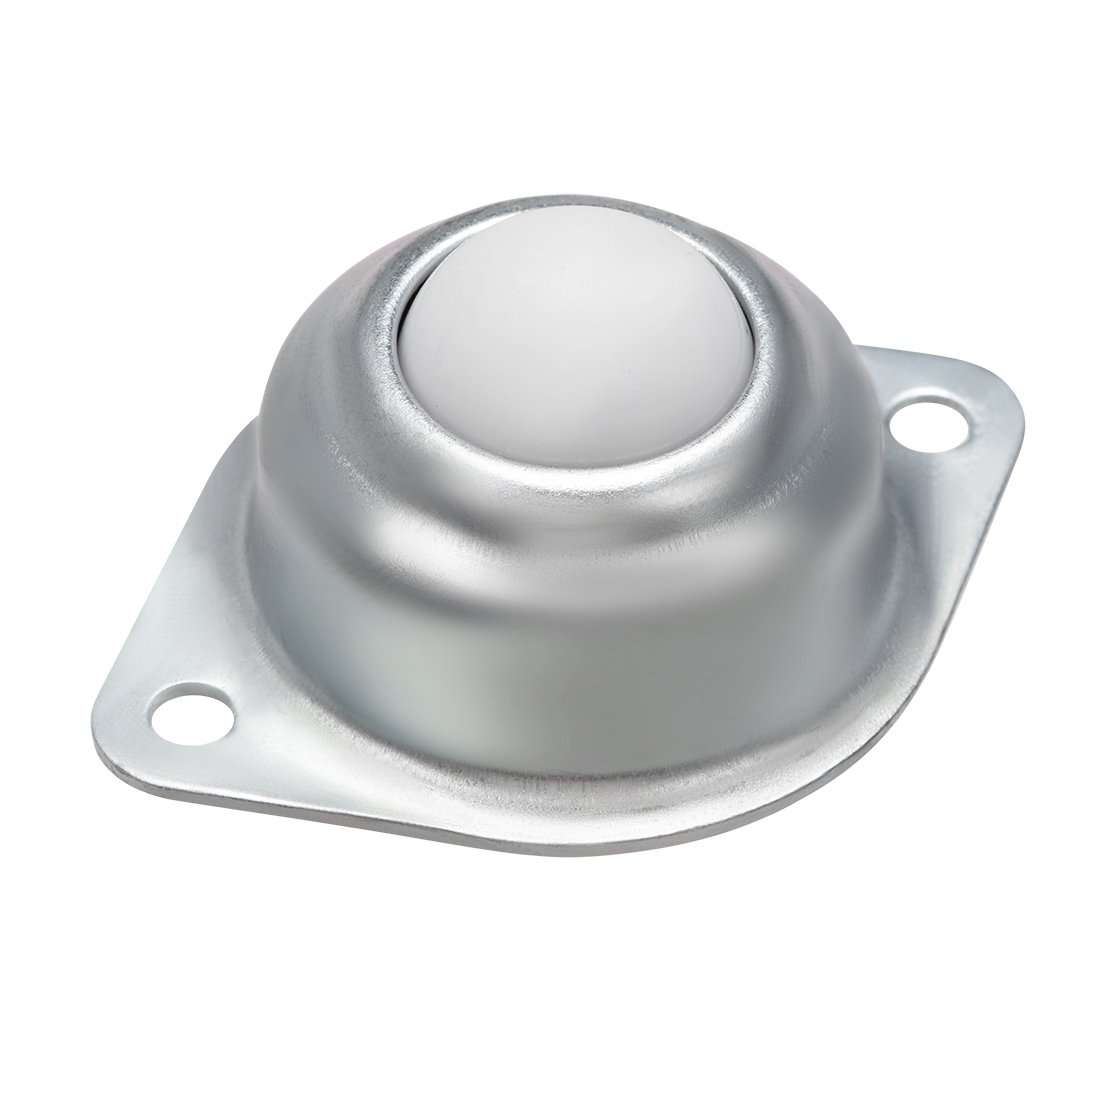 uxcell Ball Transfer Units CY 25A Flange Mounted 1 inch Nylon Roller Ball Transfer Bearing Casters 66lb Capacity